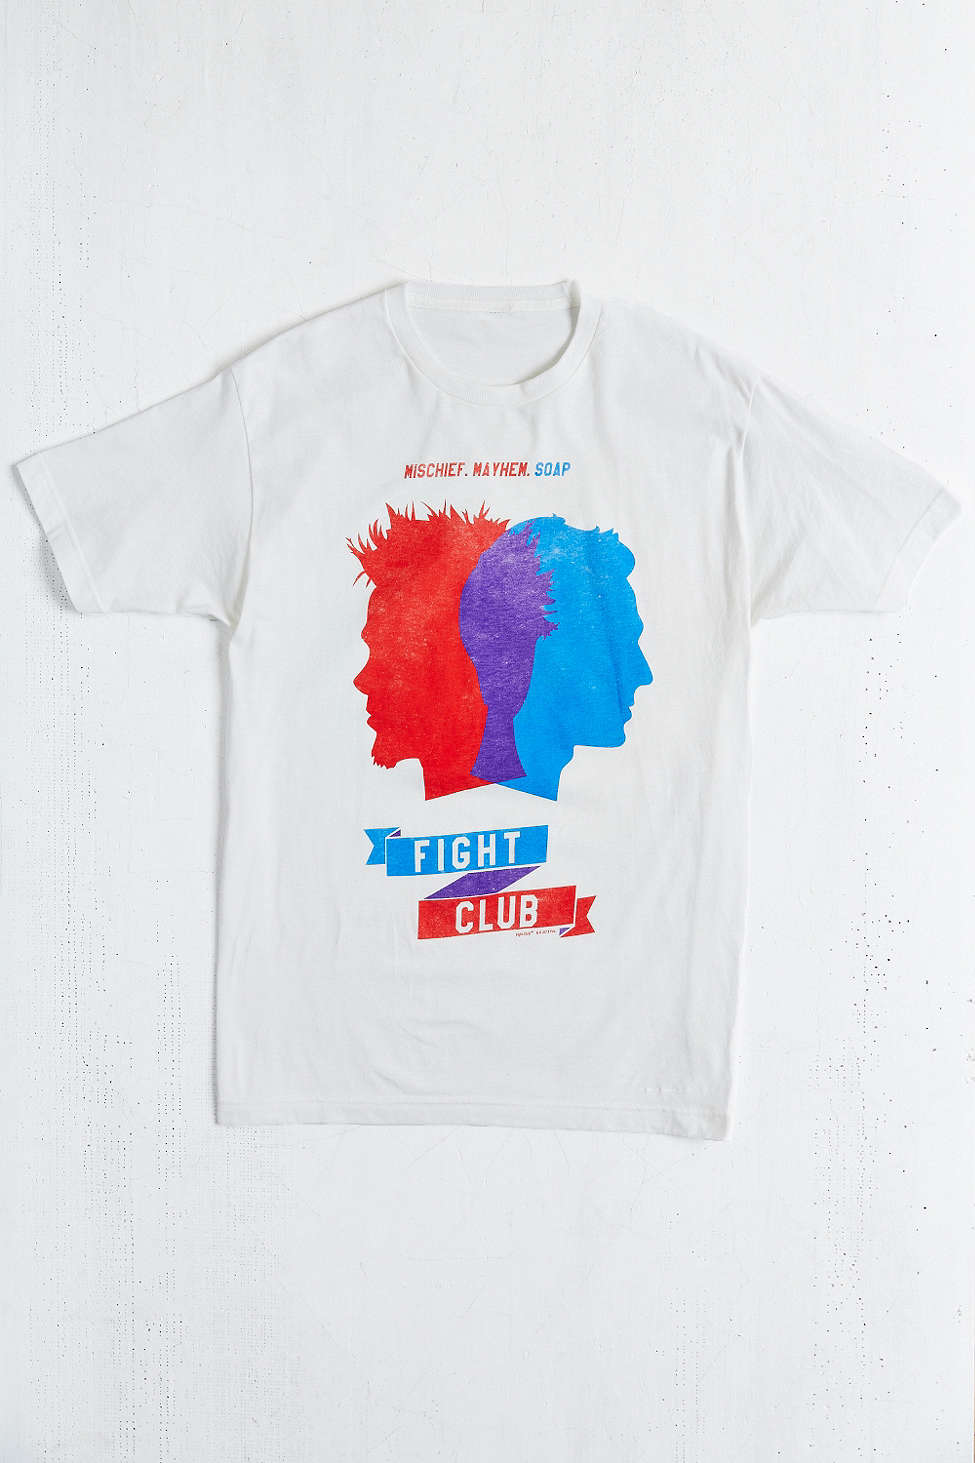 Fight Club: Mischief, Mayhem, Soap Tee